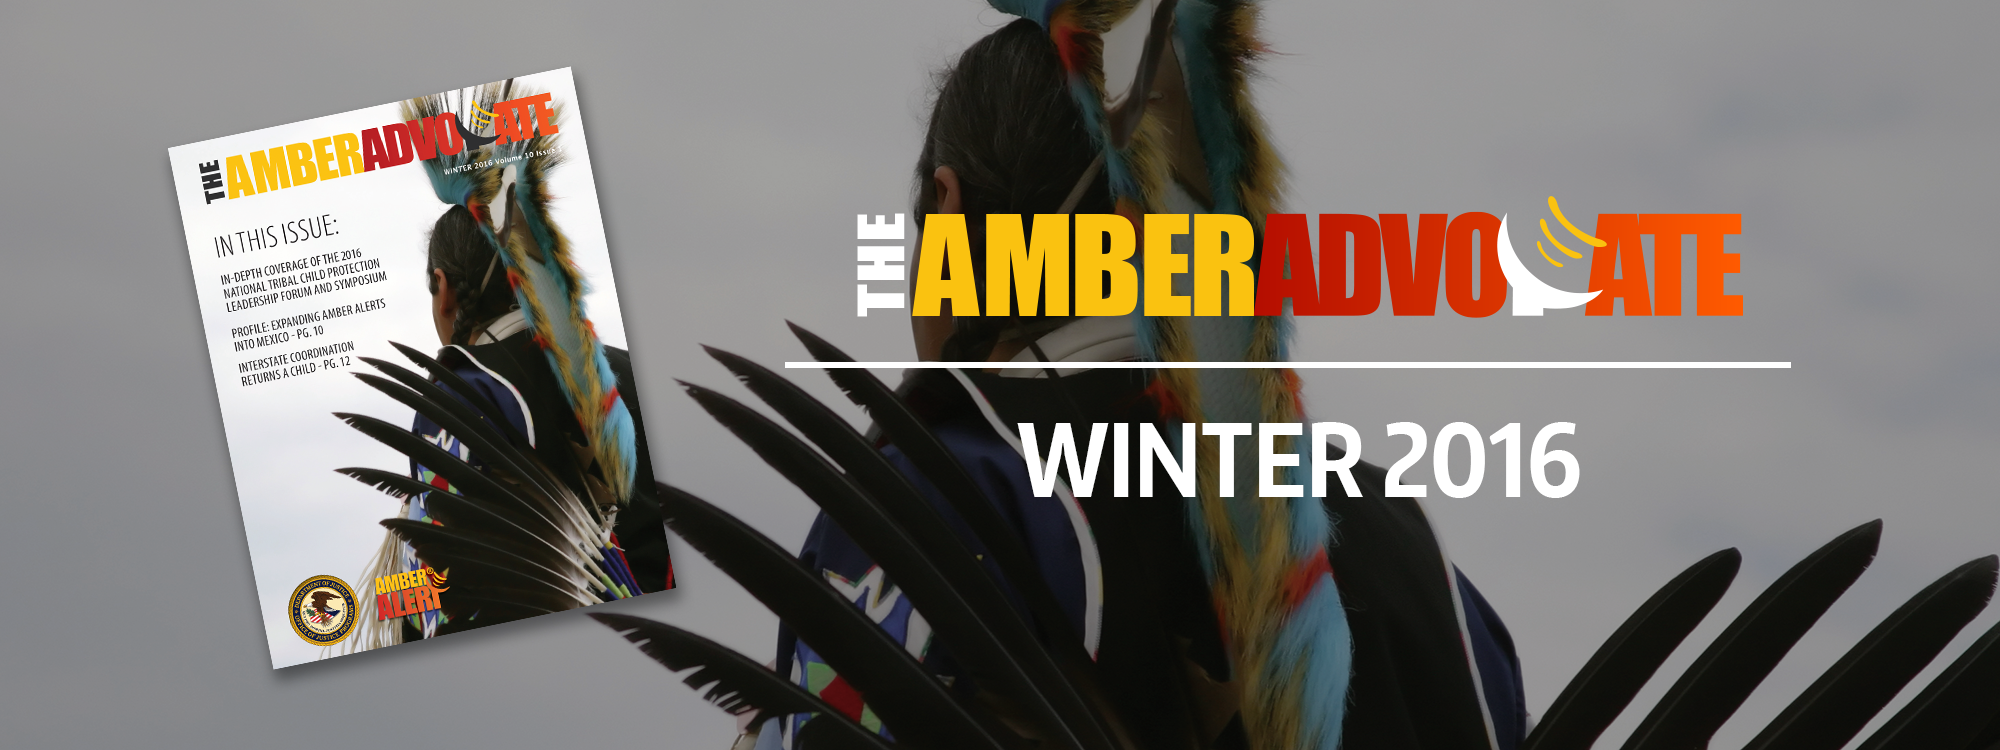 The AMBER Advocate Winter 2016 header